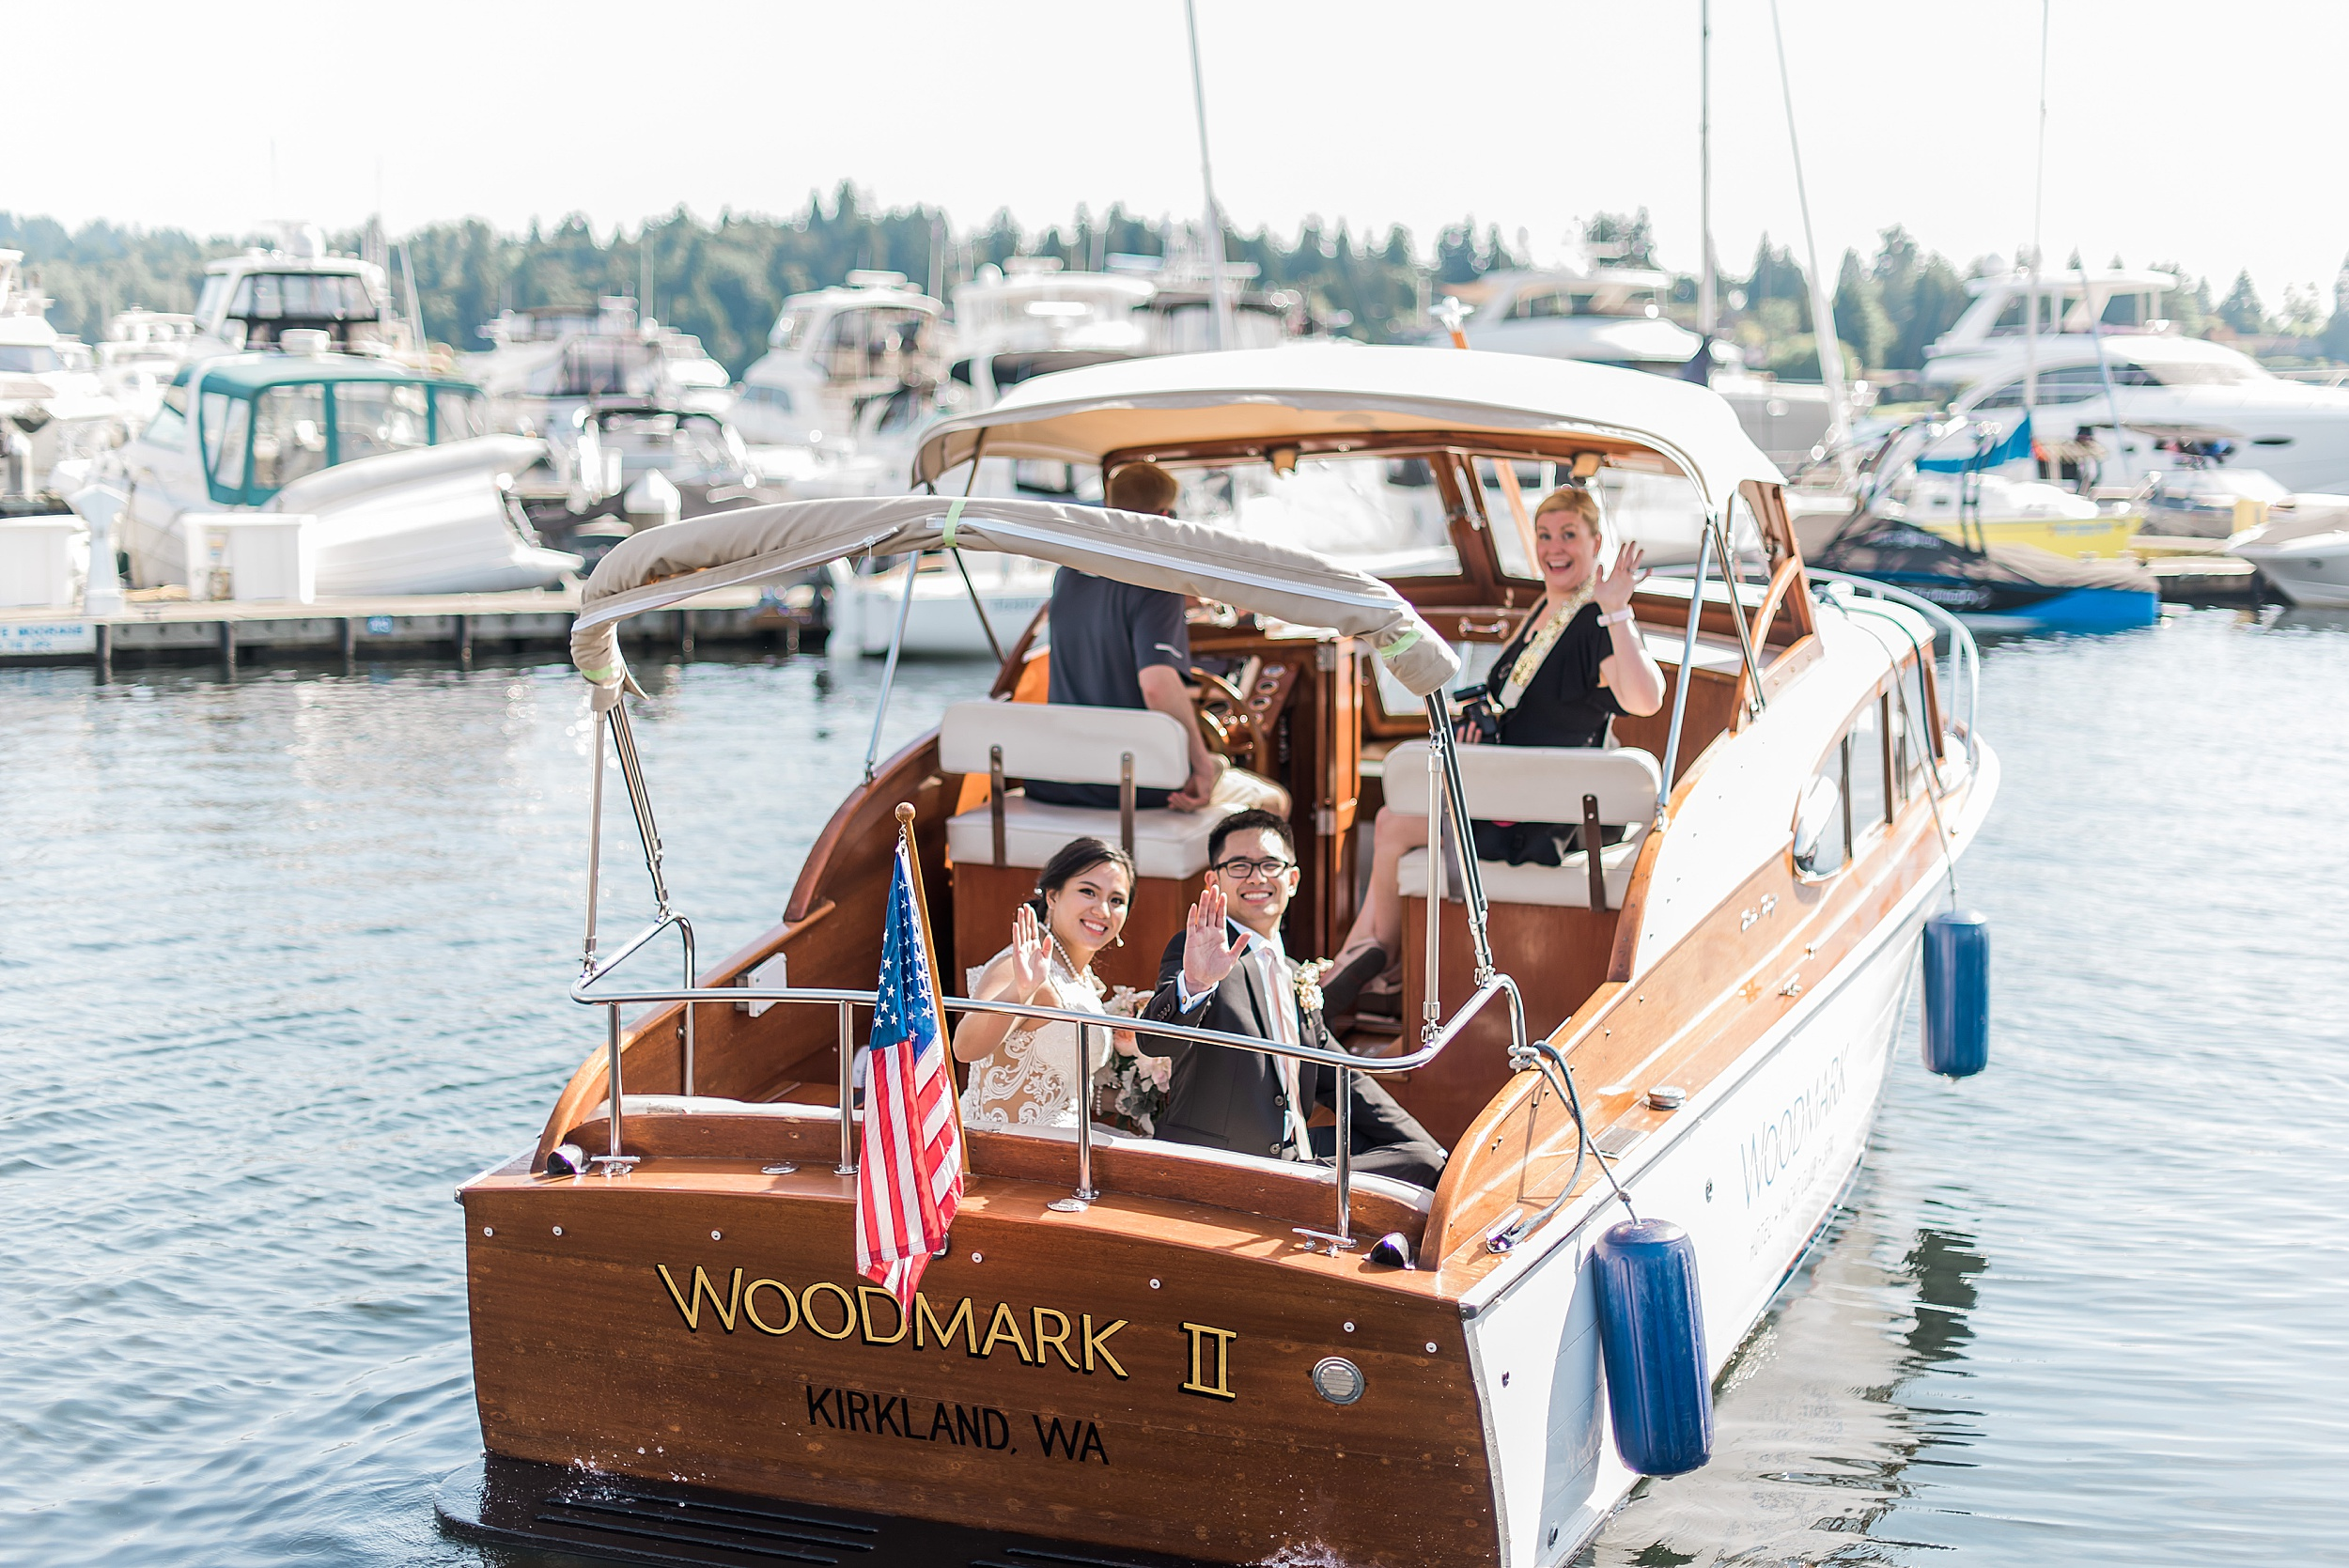 Woodmark Hotel Waterfront Wedding. Seattle Wedding Venues.